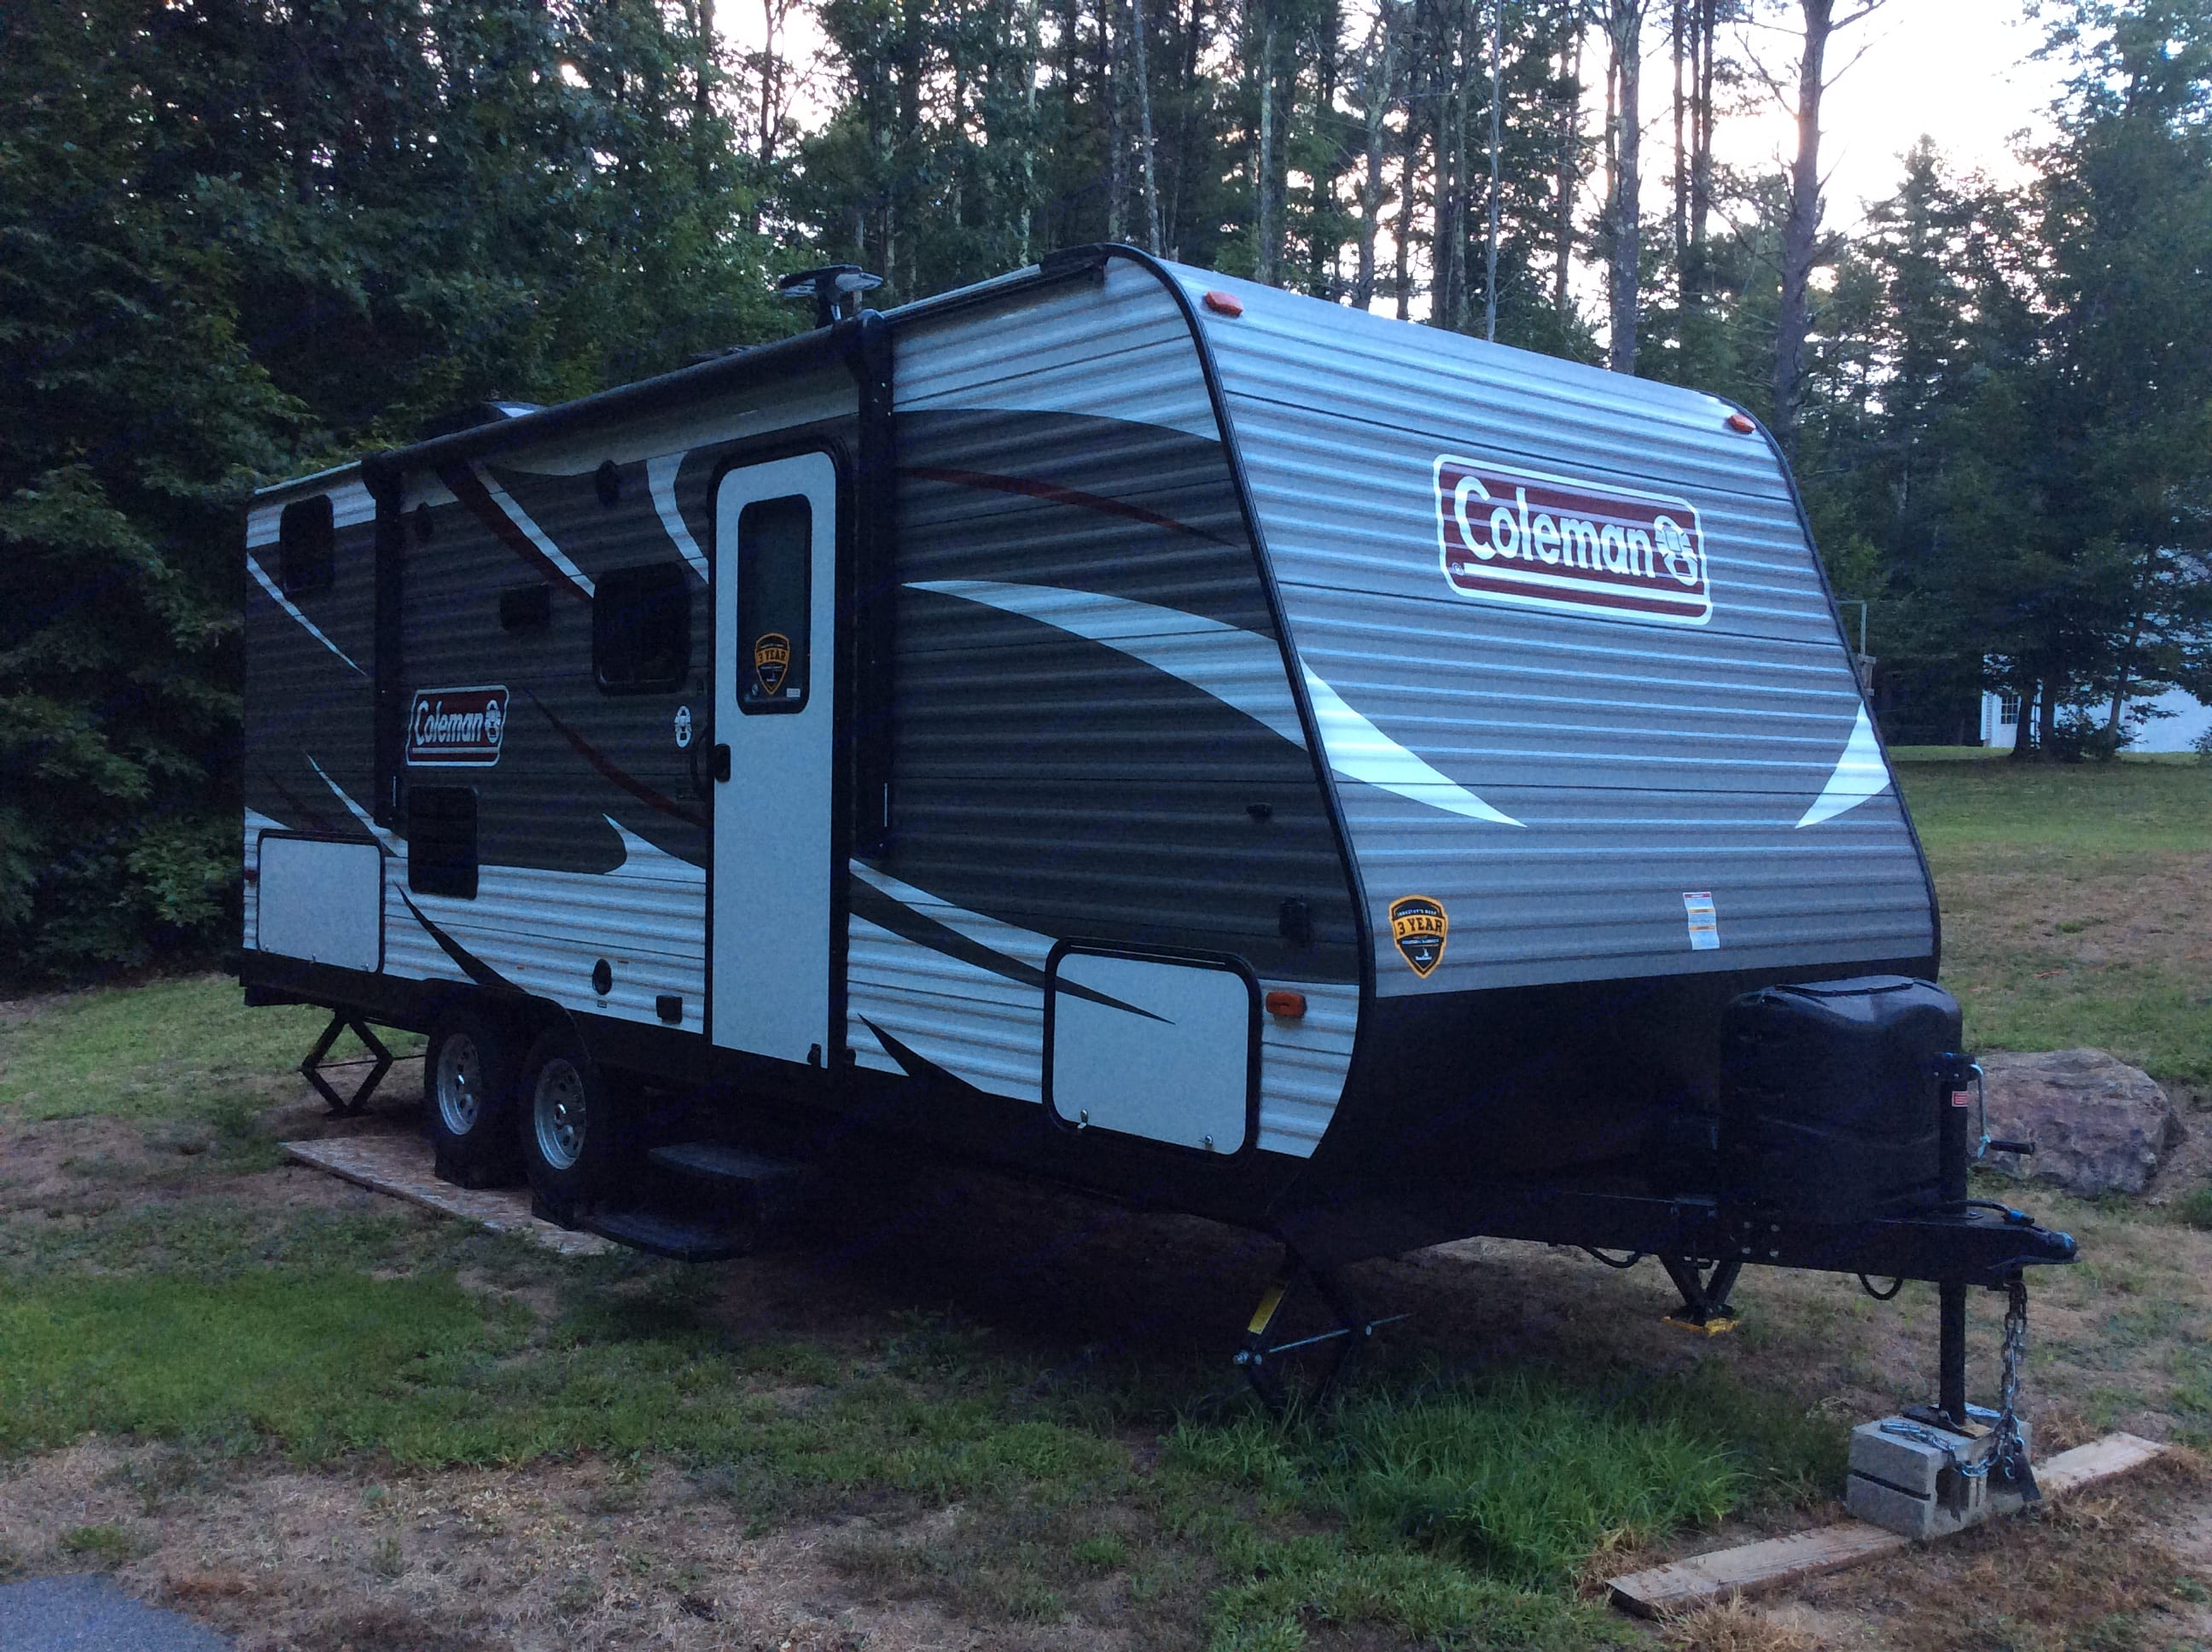 2018 Coleman Lantern bunkhouse with power awning, outdoor kitchen, and external speakers.. Coleman Lantern 2018